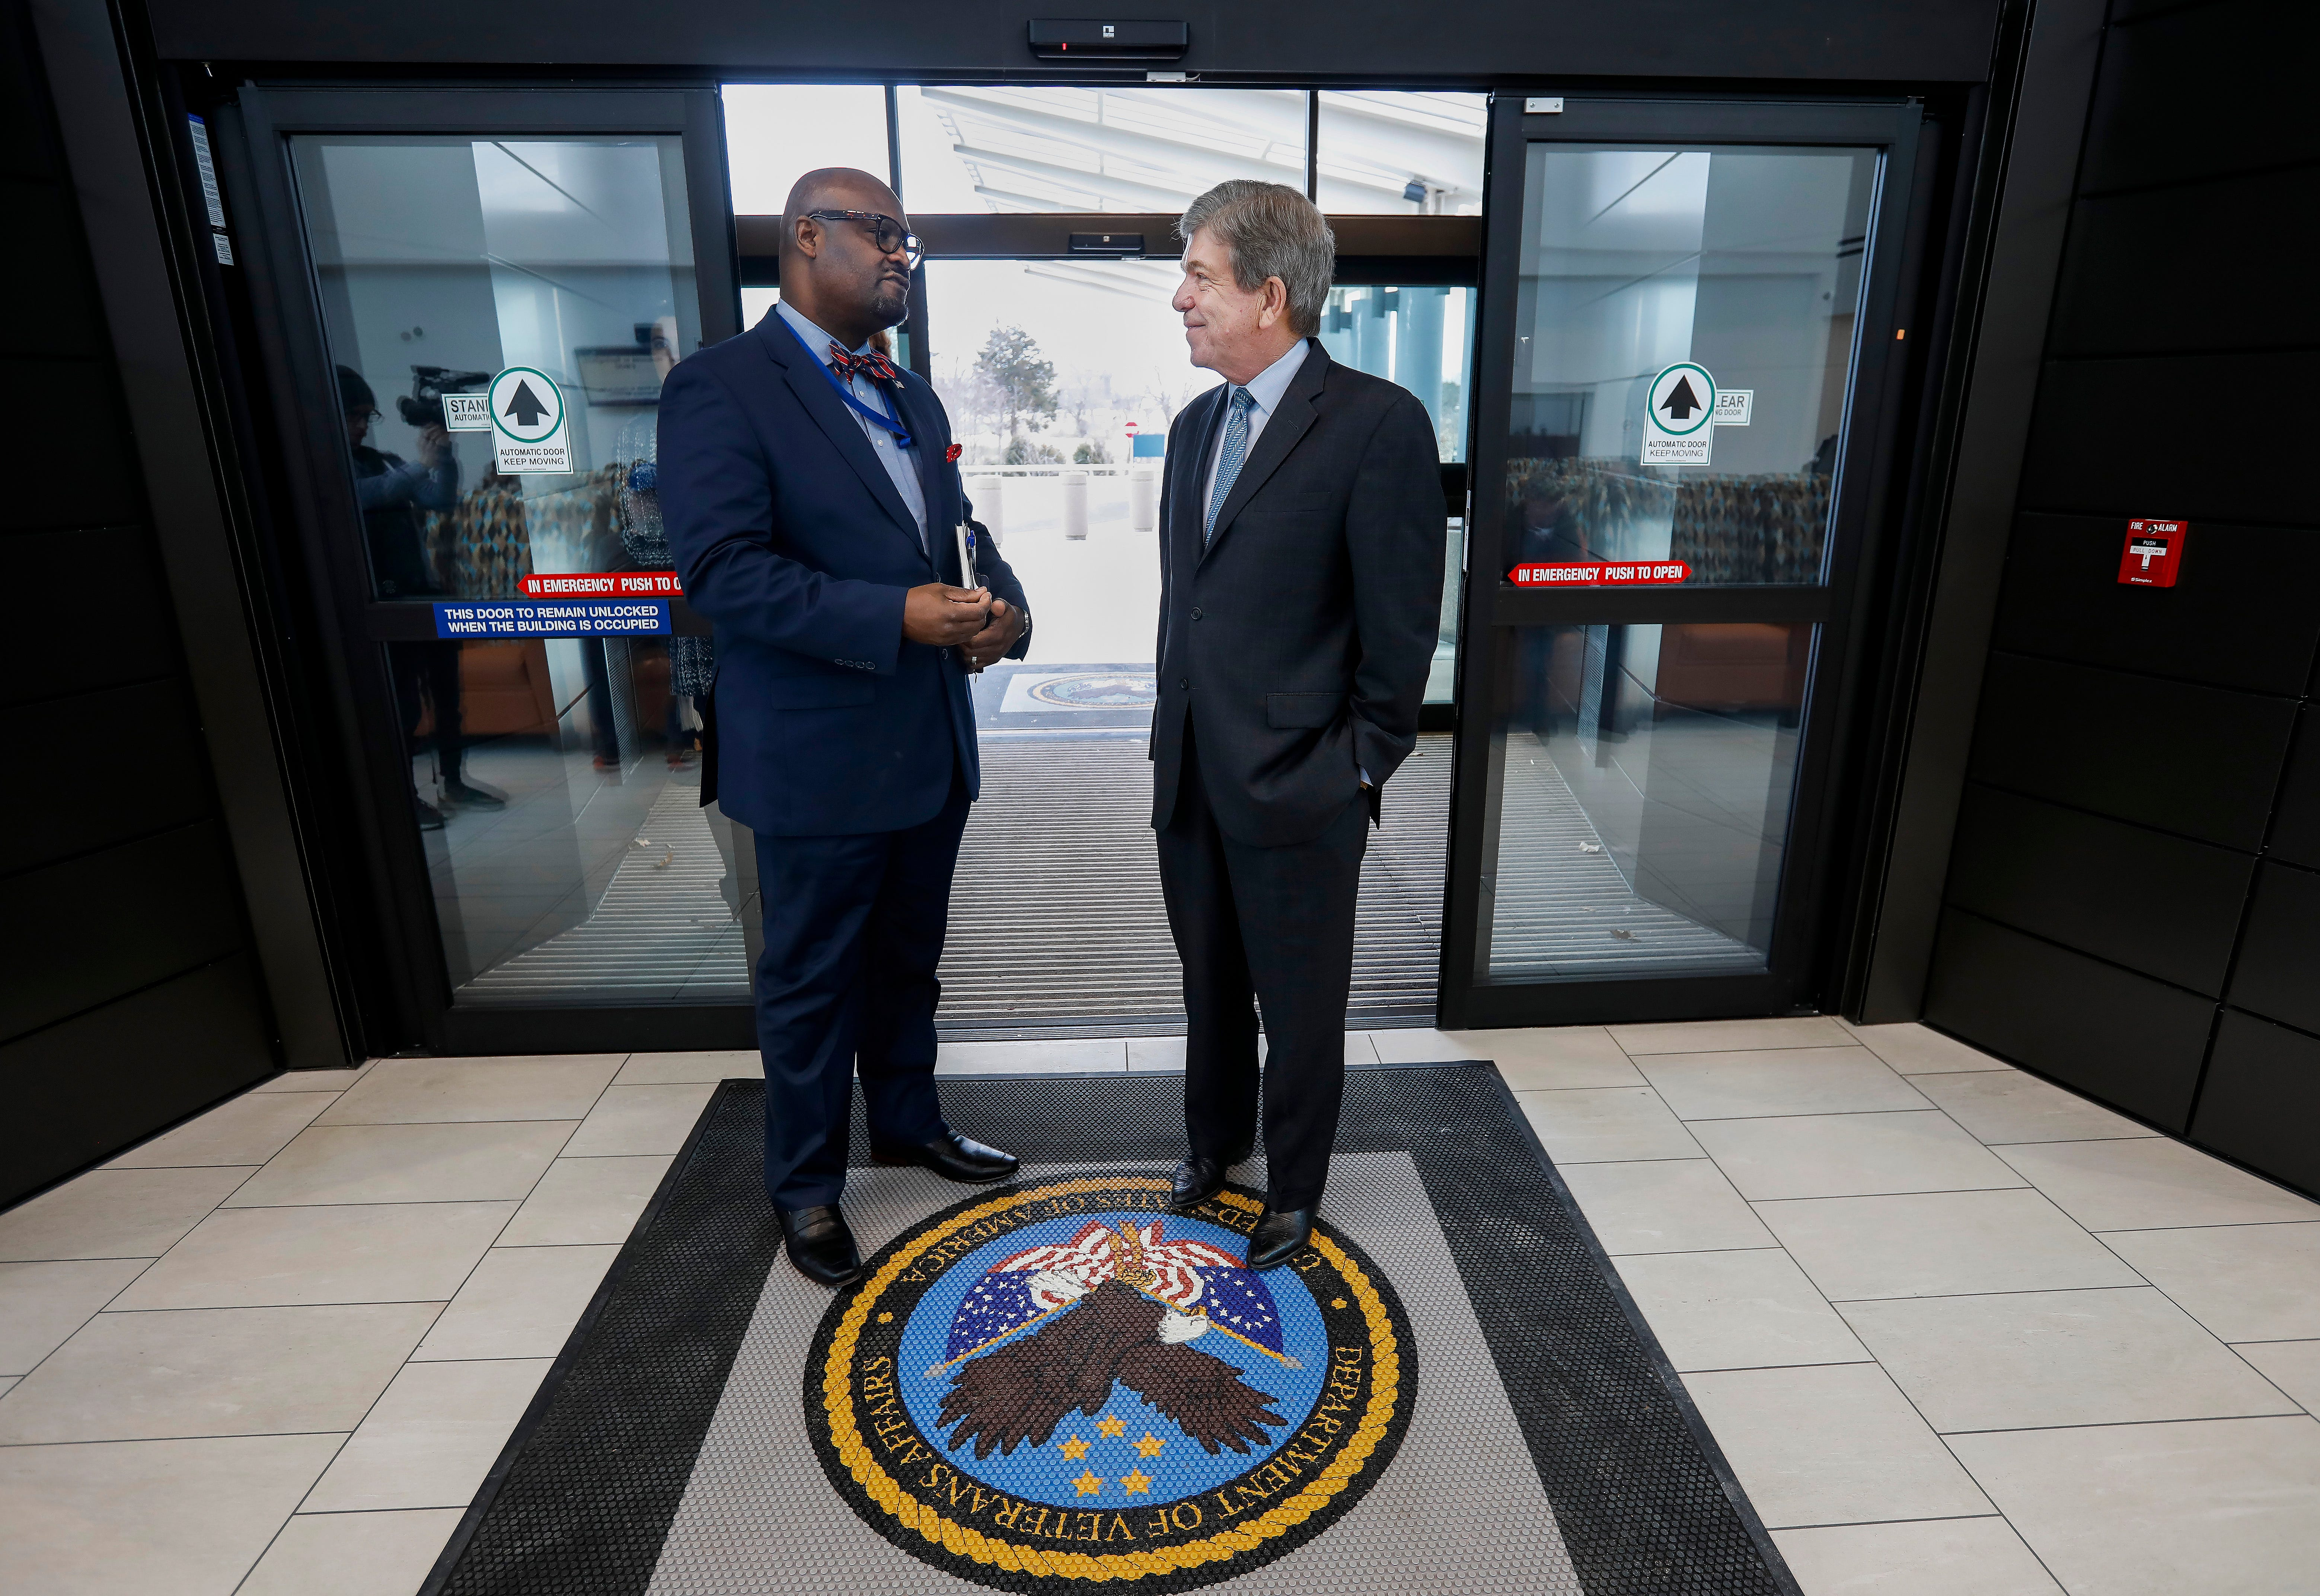 Sen. Roy Blunt, right, talks with Kelvin Parks, director of the Department of Veterans Affairs Gene Taylor Community Based Outpatient Clinic, before touring the new facility on Friday, Feb. 1, 2019.